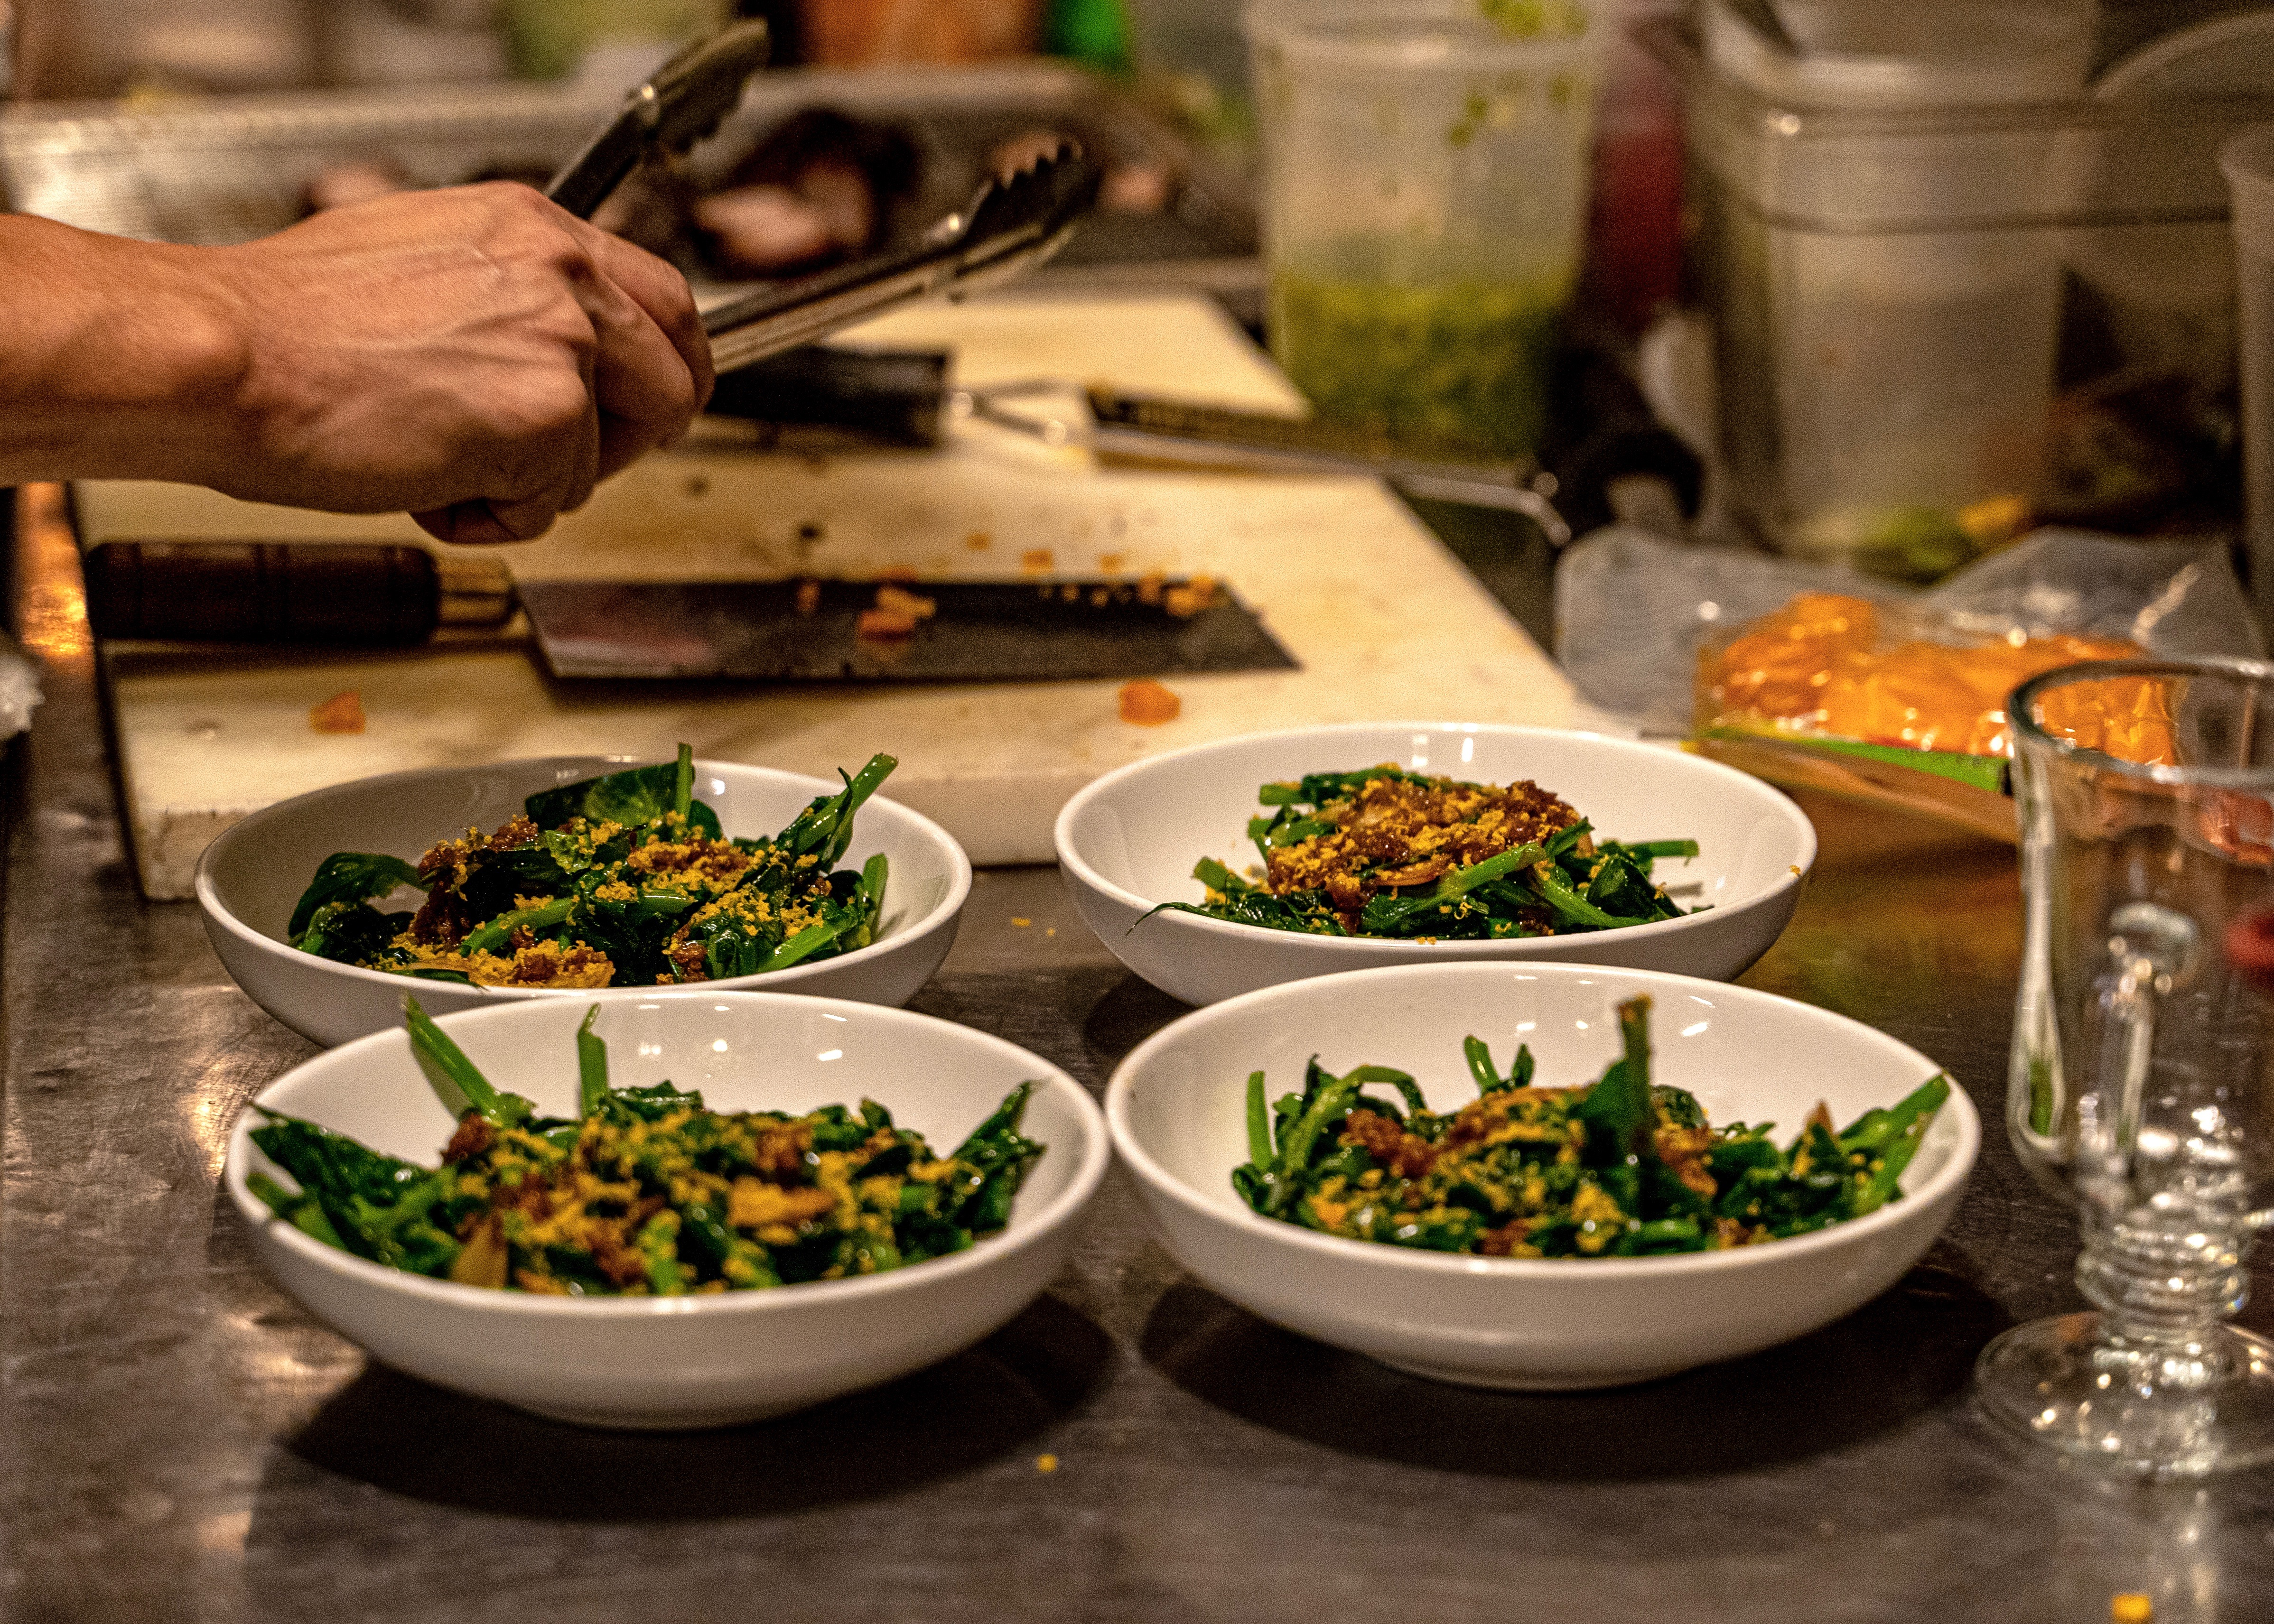 Four white bowls with green vegetables laid out on a kitchen table with hands in the background working over a cutting board